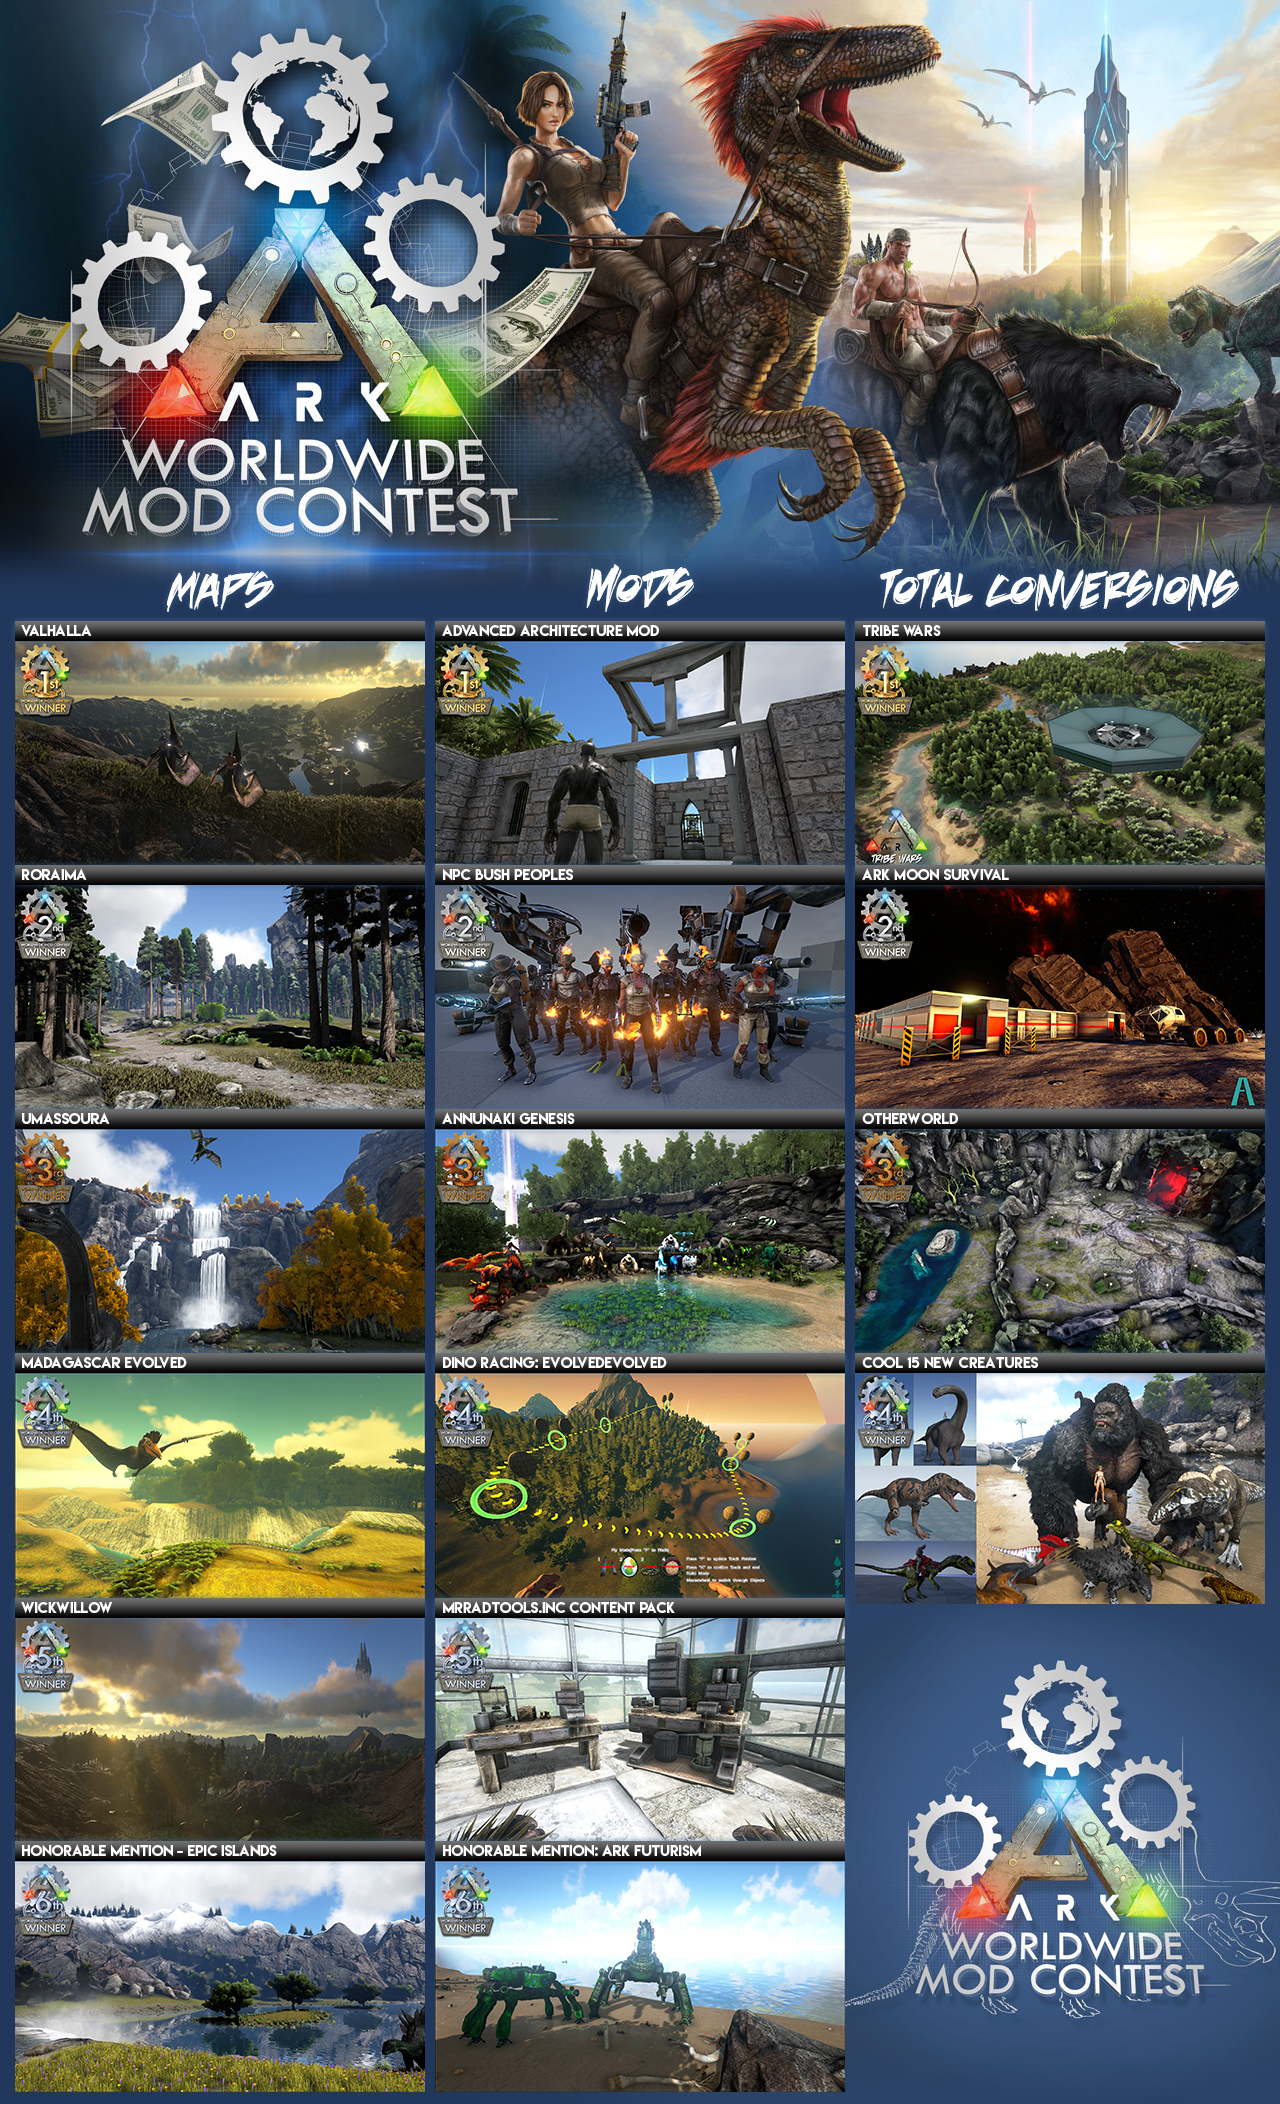 ARK: Survival Evolved Modding Contest Winners – Total Conversions